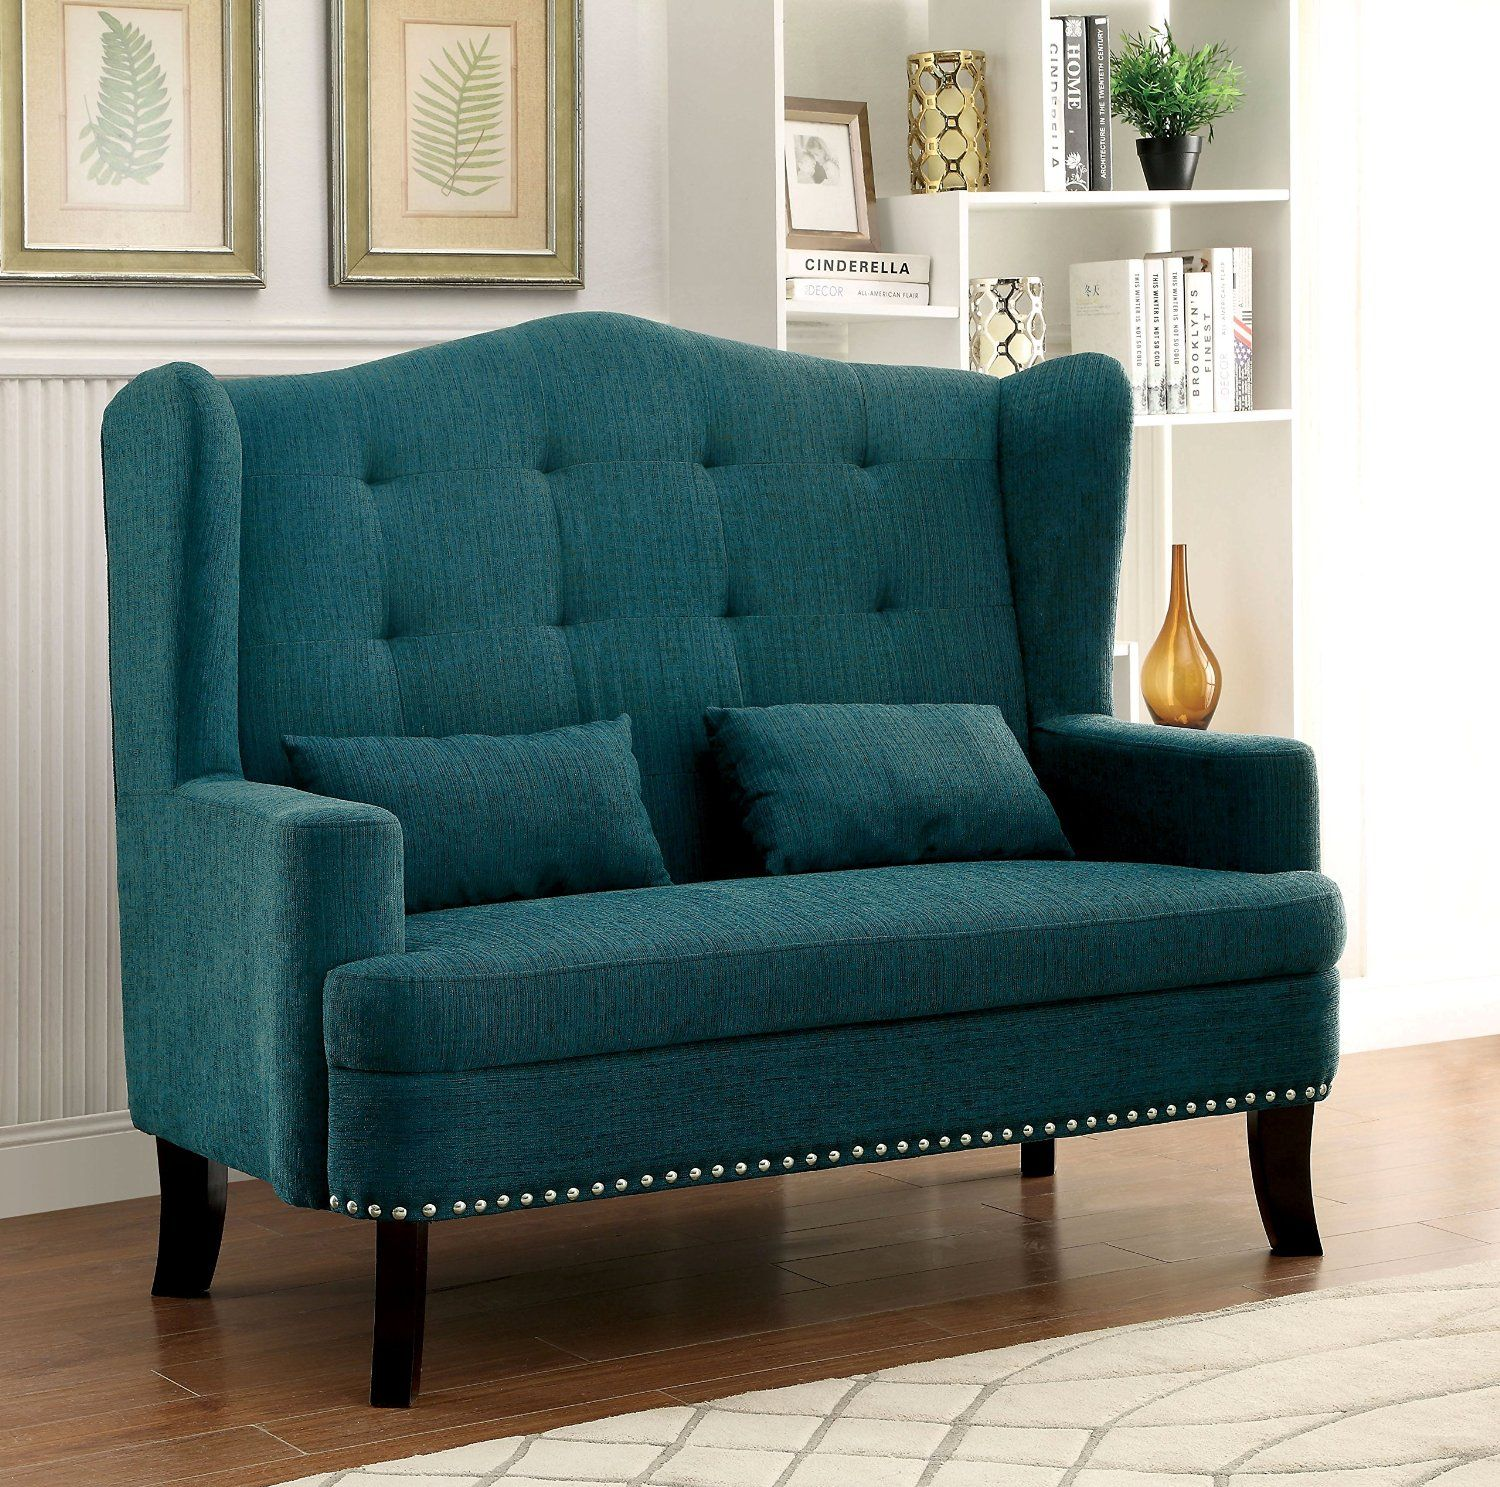 Teal Accent Chairs In Living Room Teal Blue Living Room Chair Teal